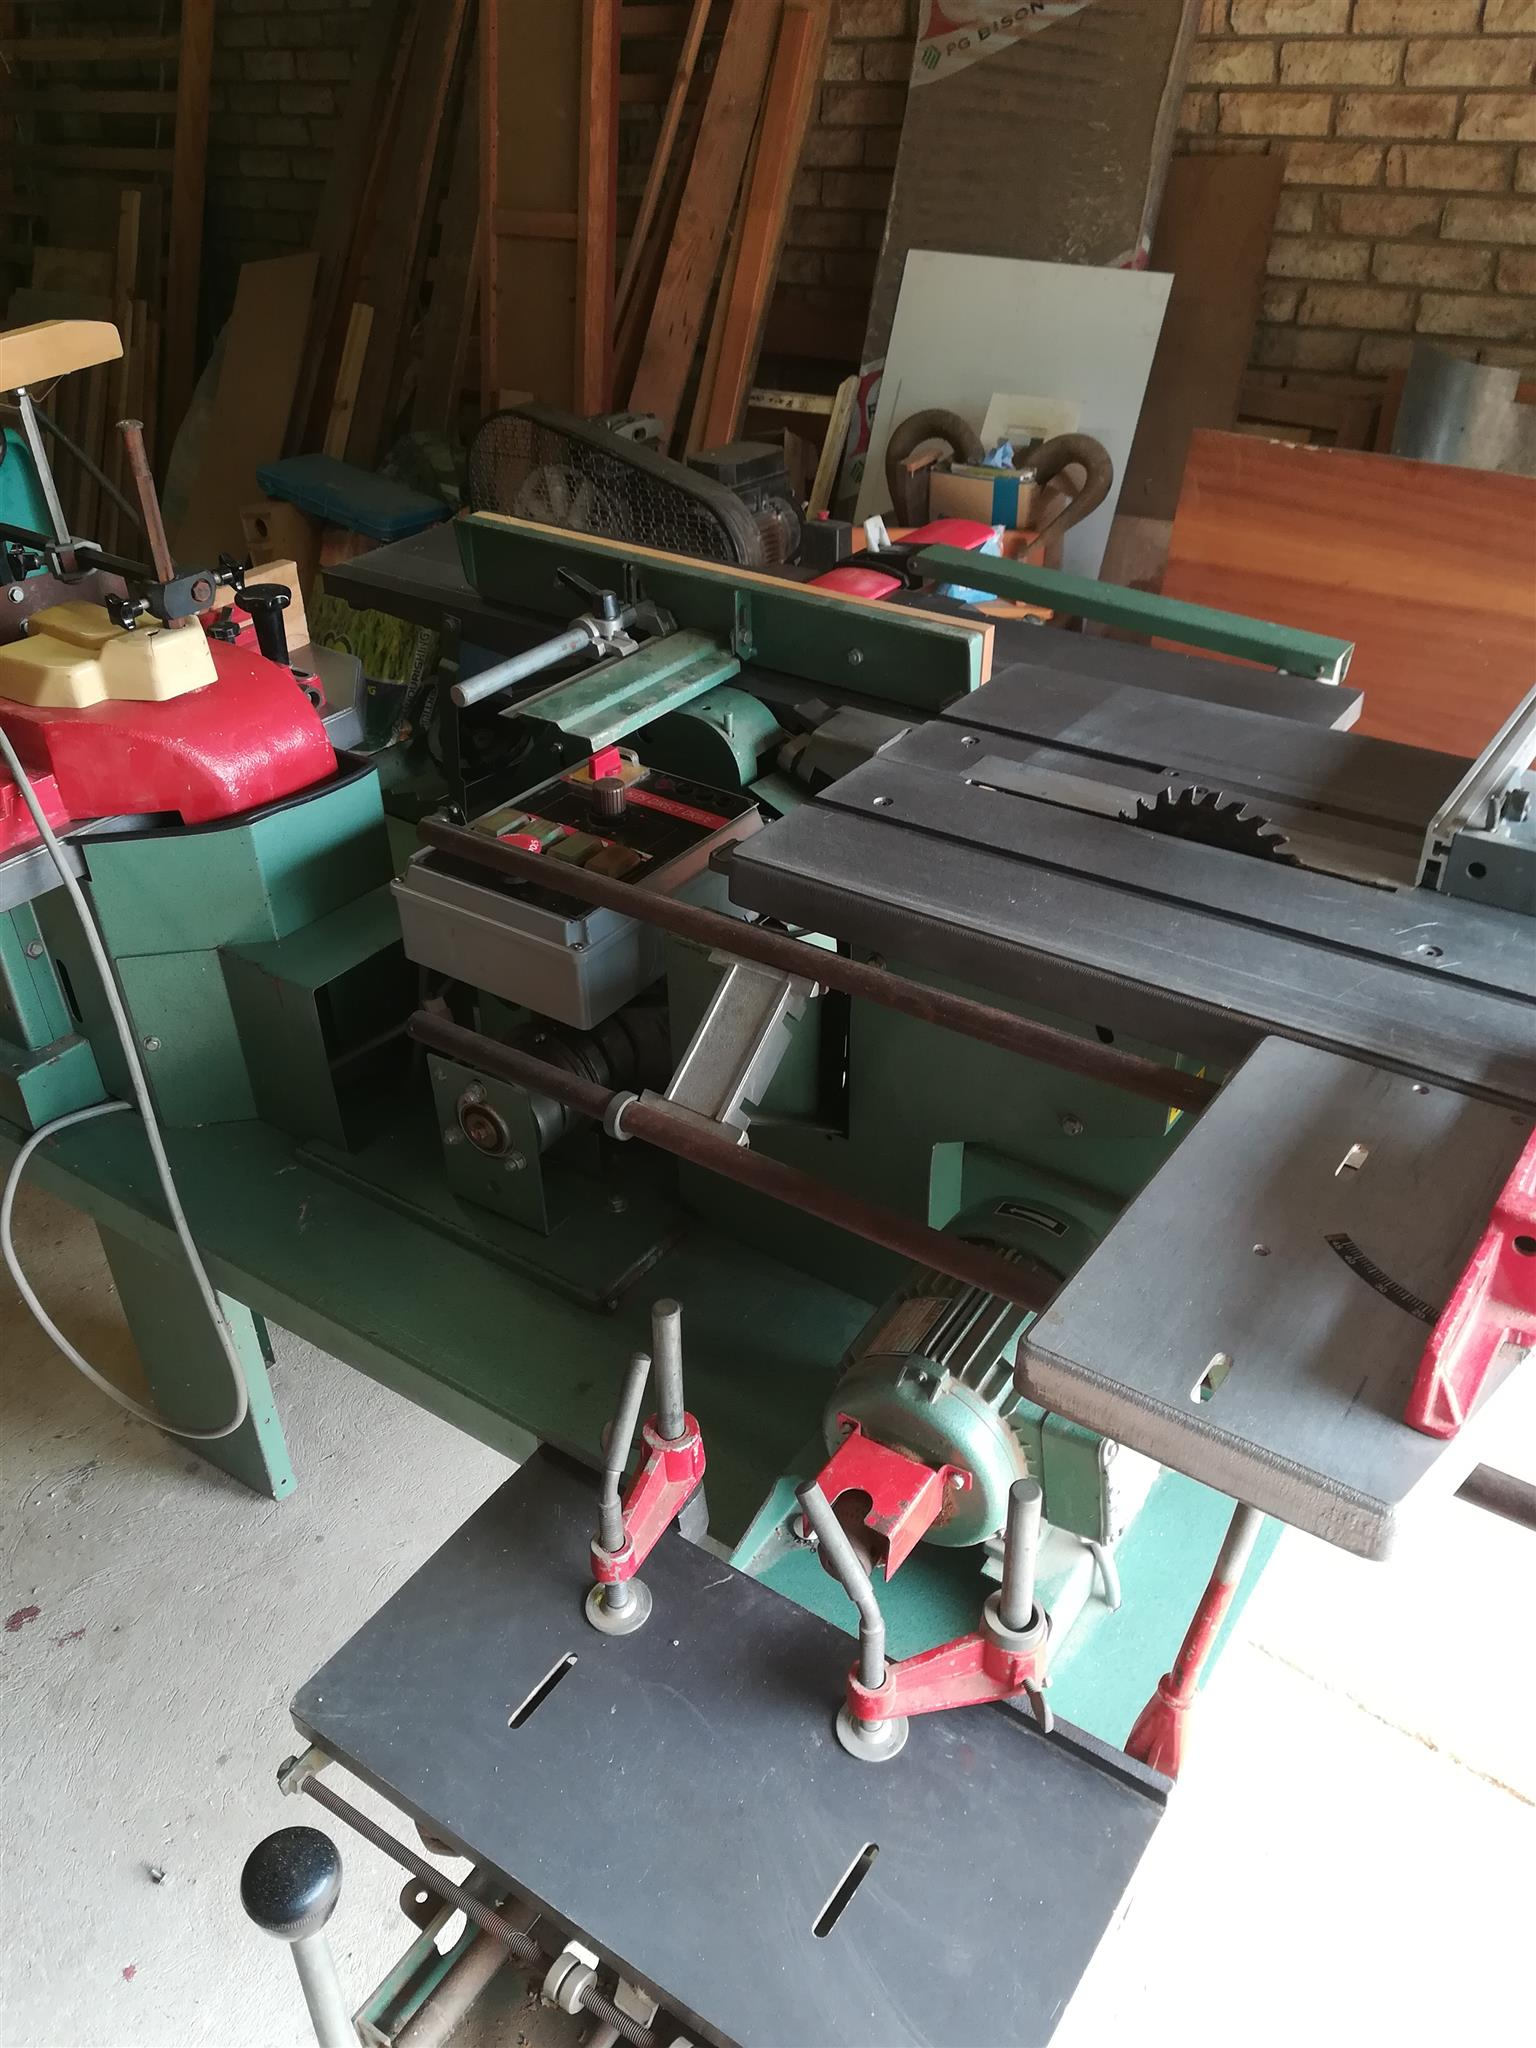 Kitty Combination Woodworking Machine Junk Mail